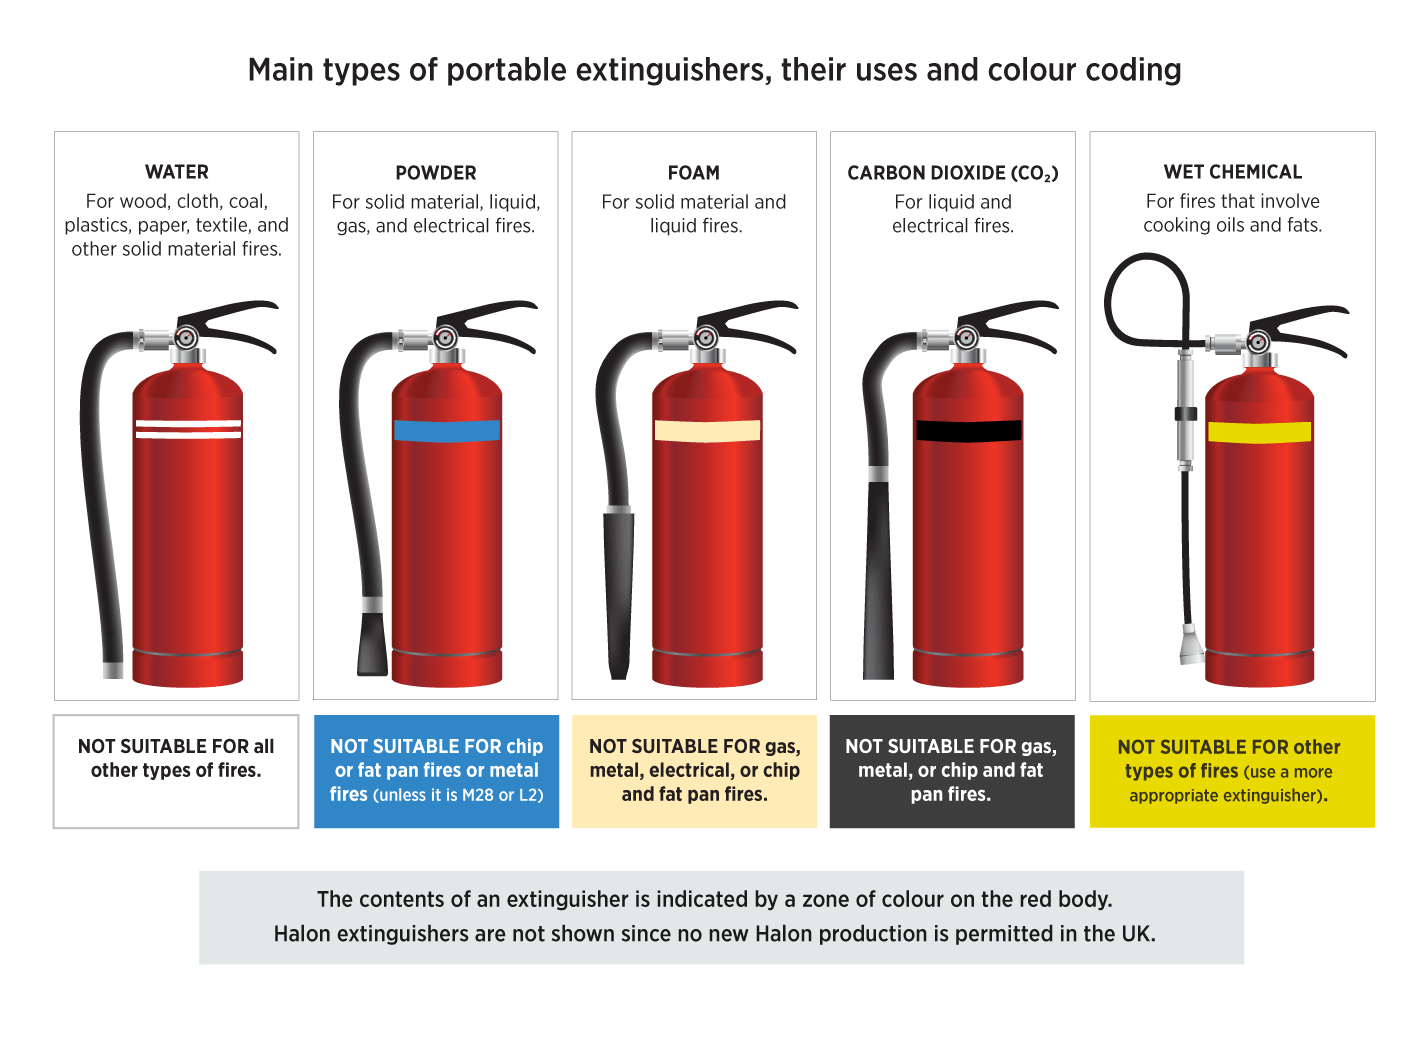 Type Of Portable Extinguishers Their Uses And Colour